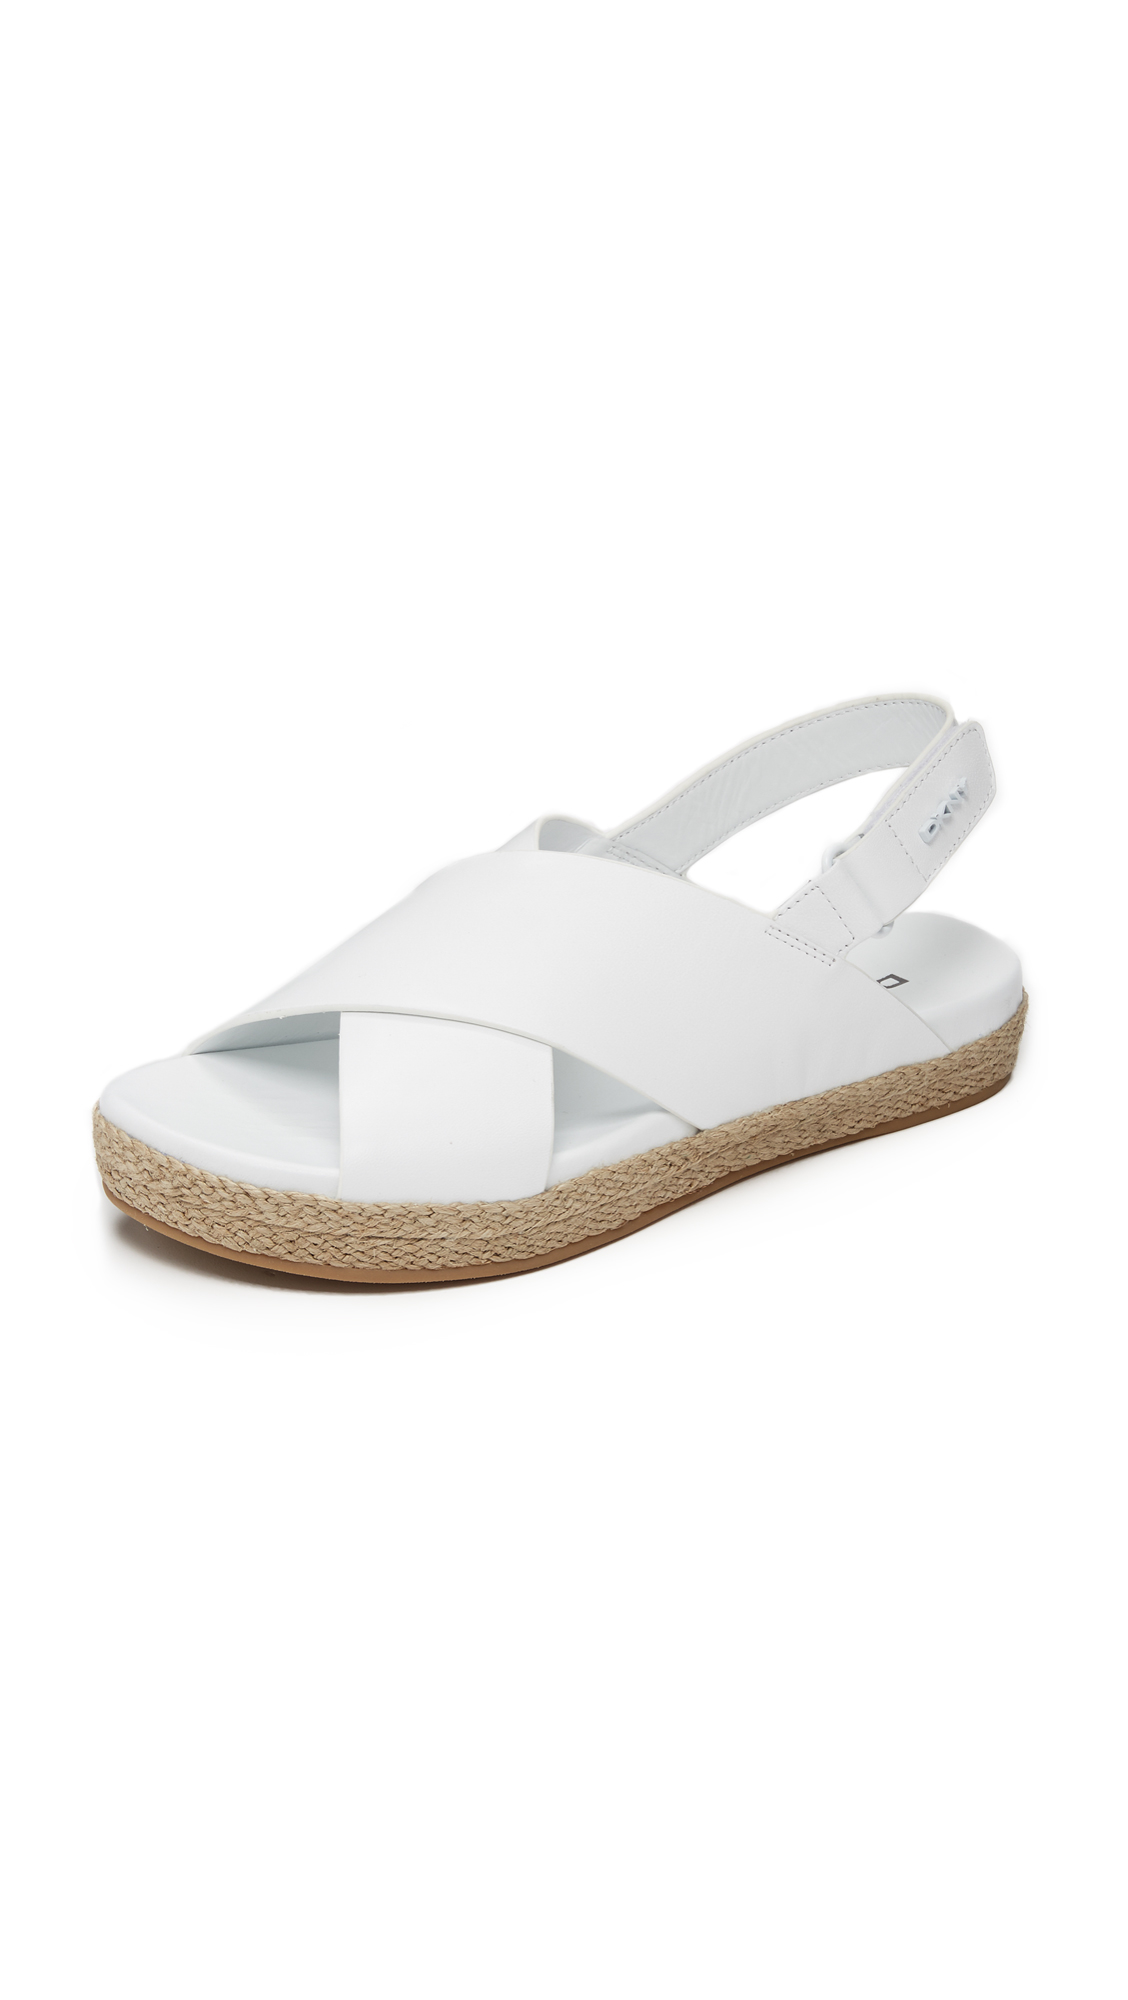 lyst dkny bethune jute sandals in white